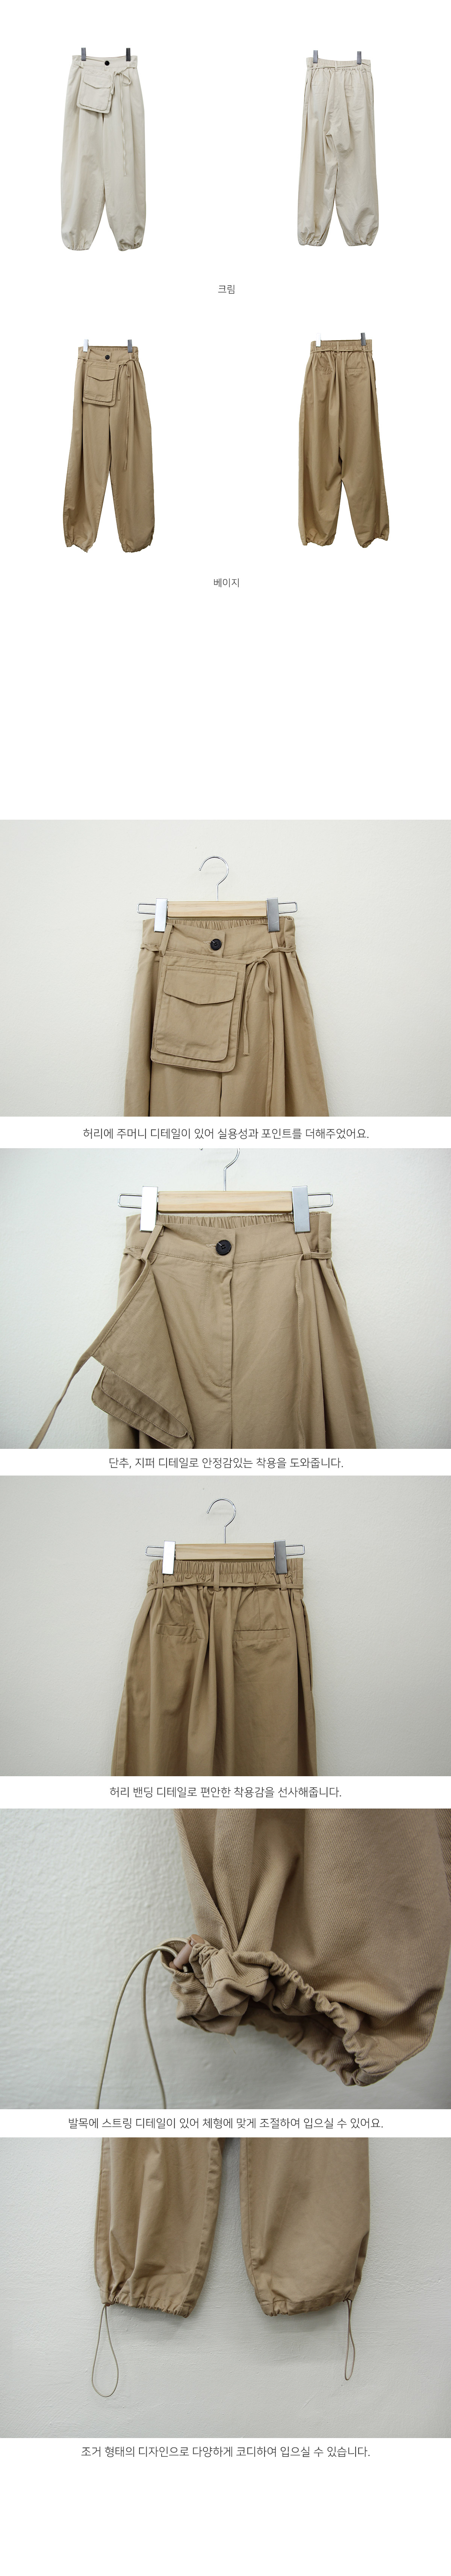 Nixon Pocket pants